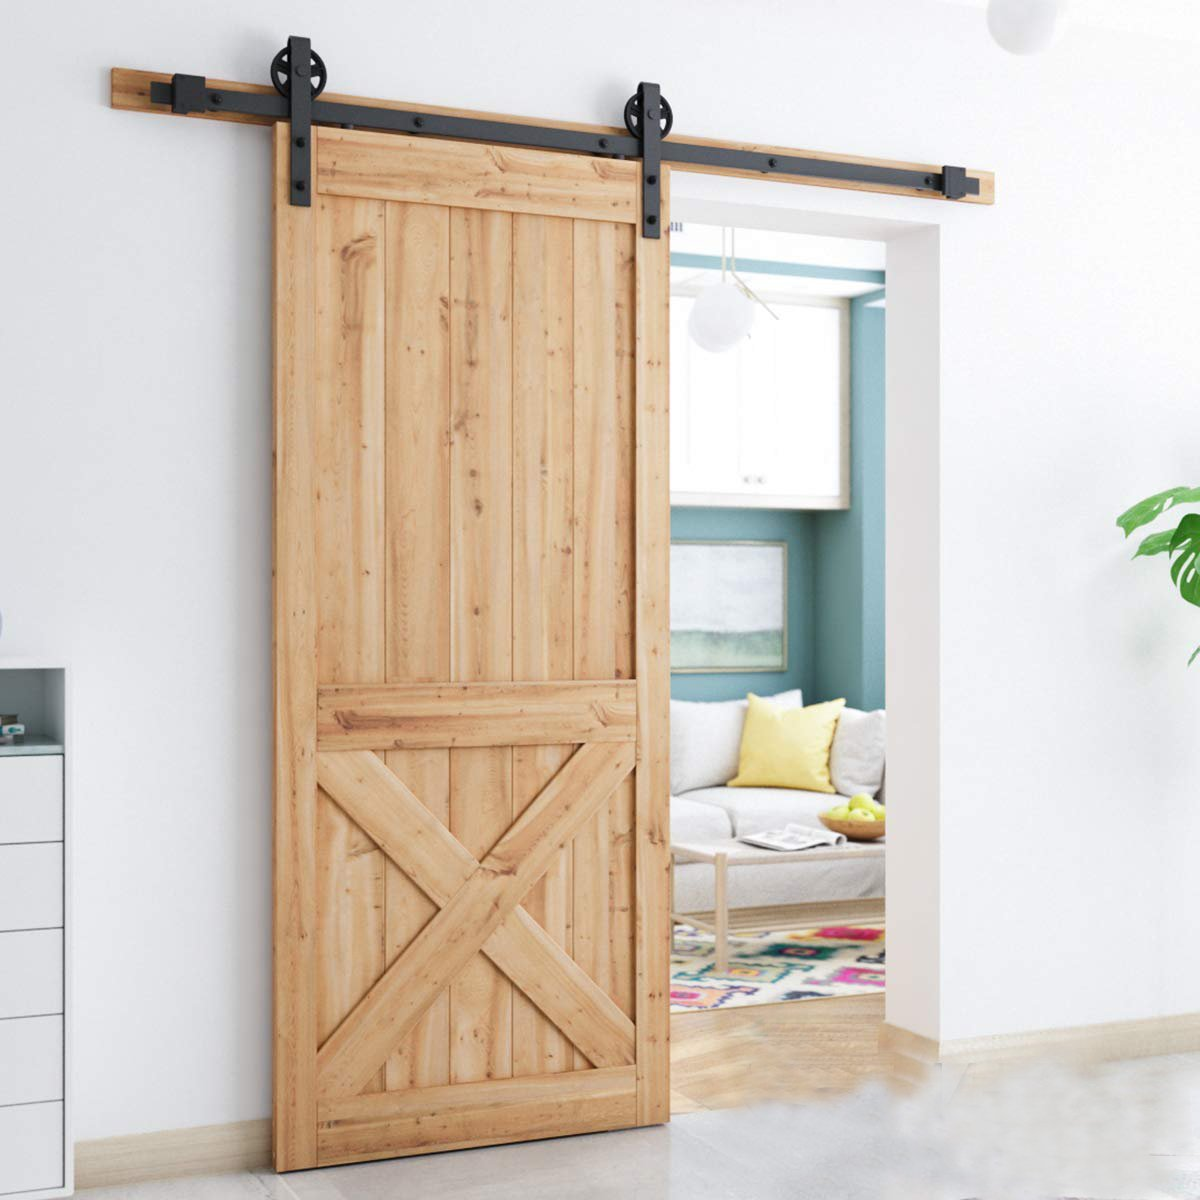 5 FT Sliding Barn Door Hardware Kit(Bigwheel Shape)